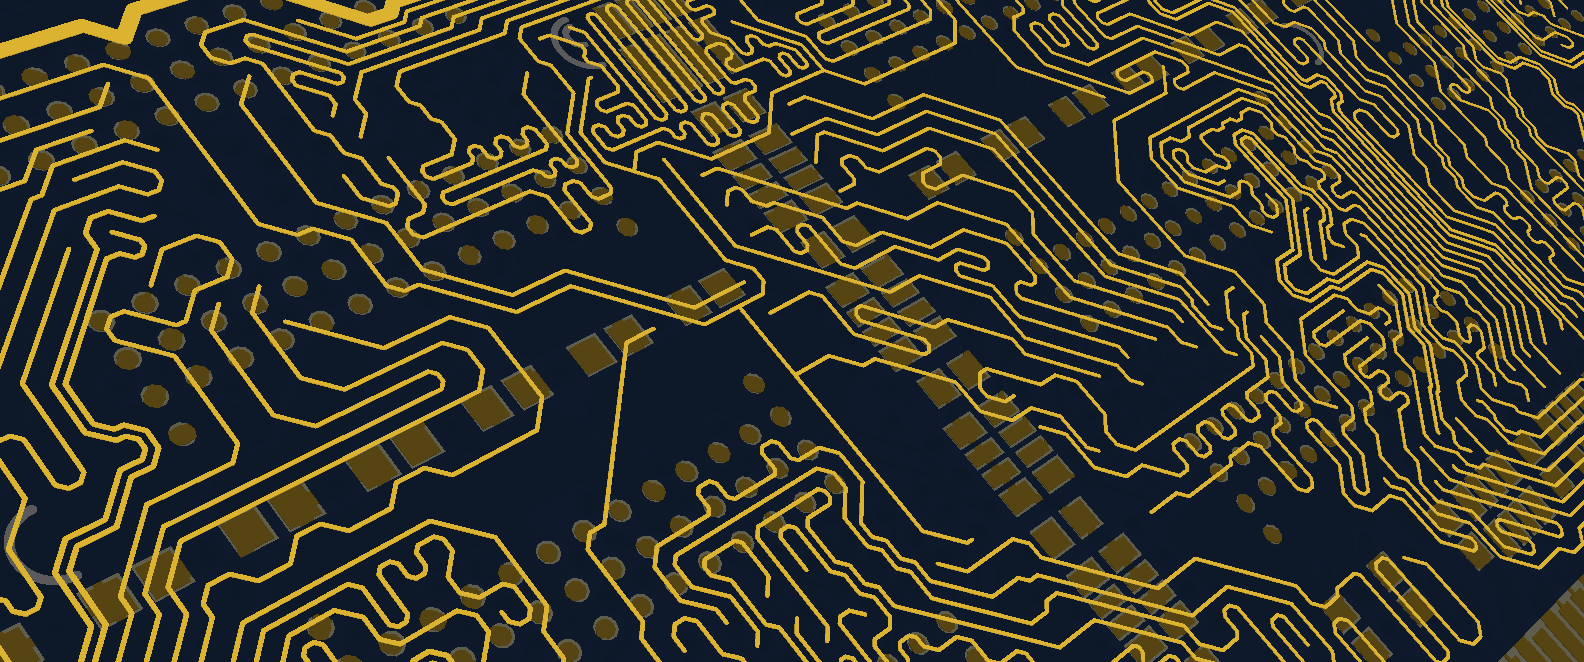 PCB layout tech experience shared- Seeed.cc